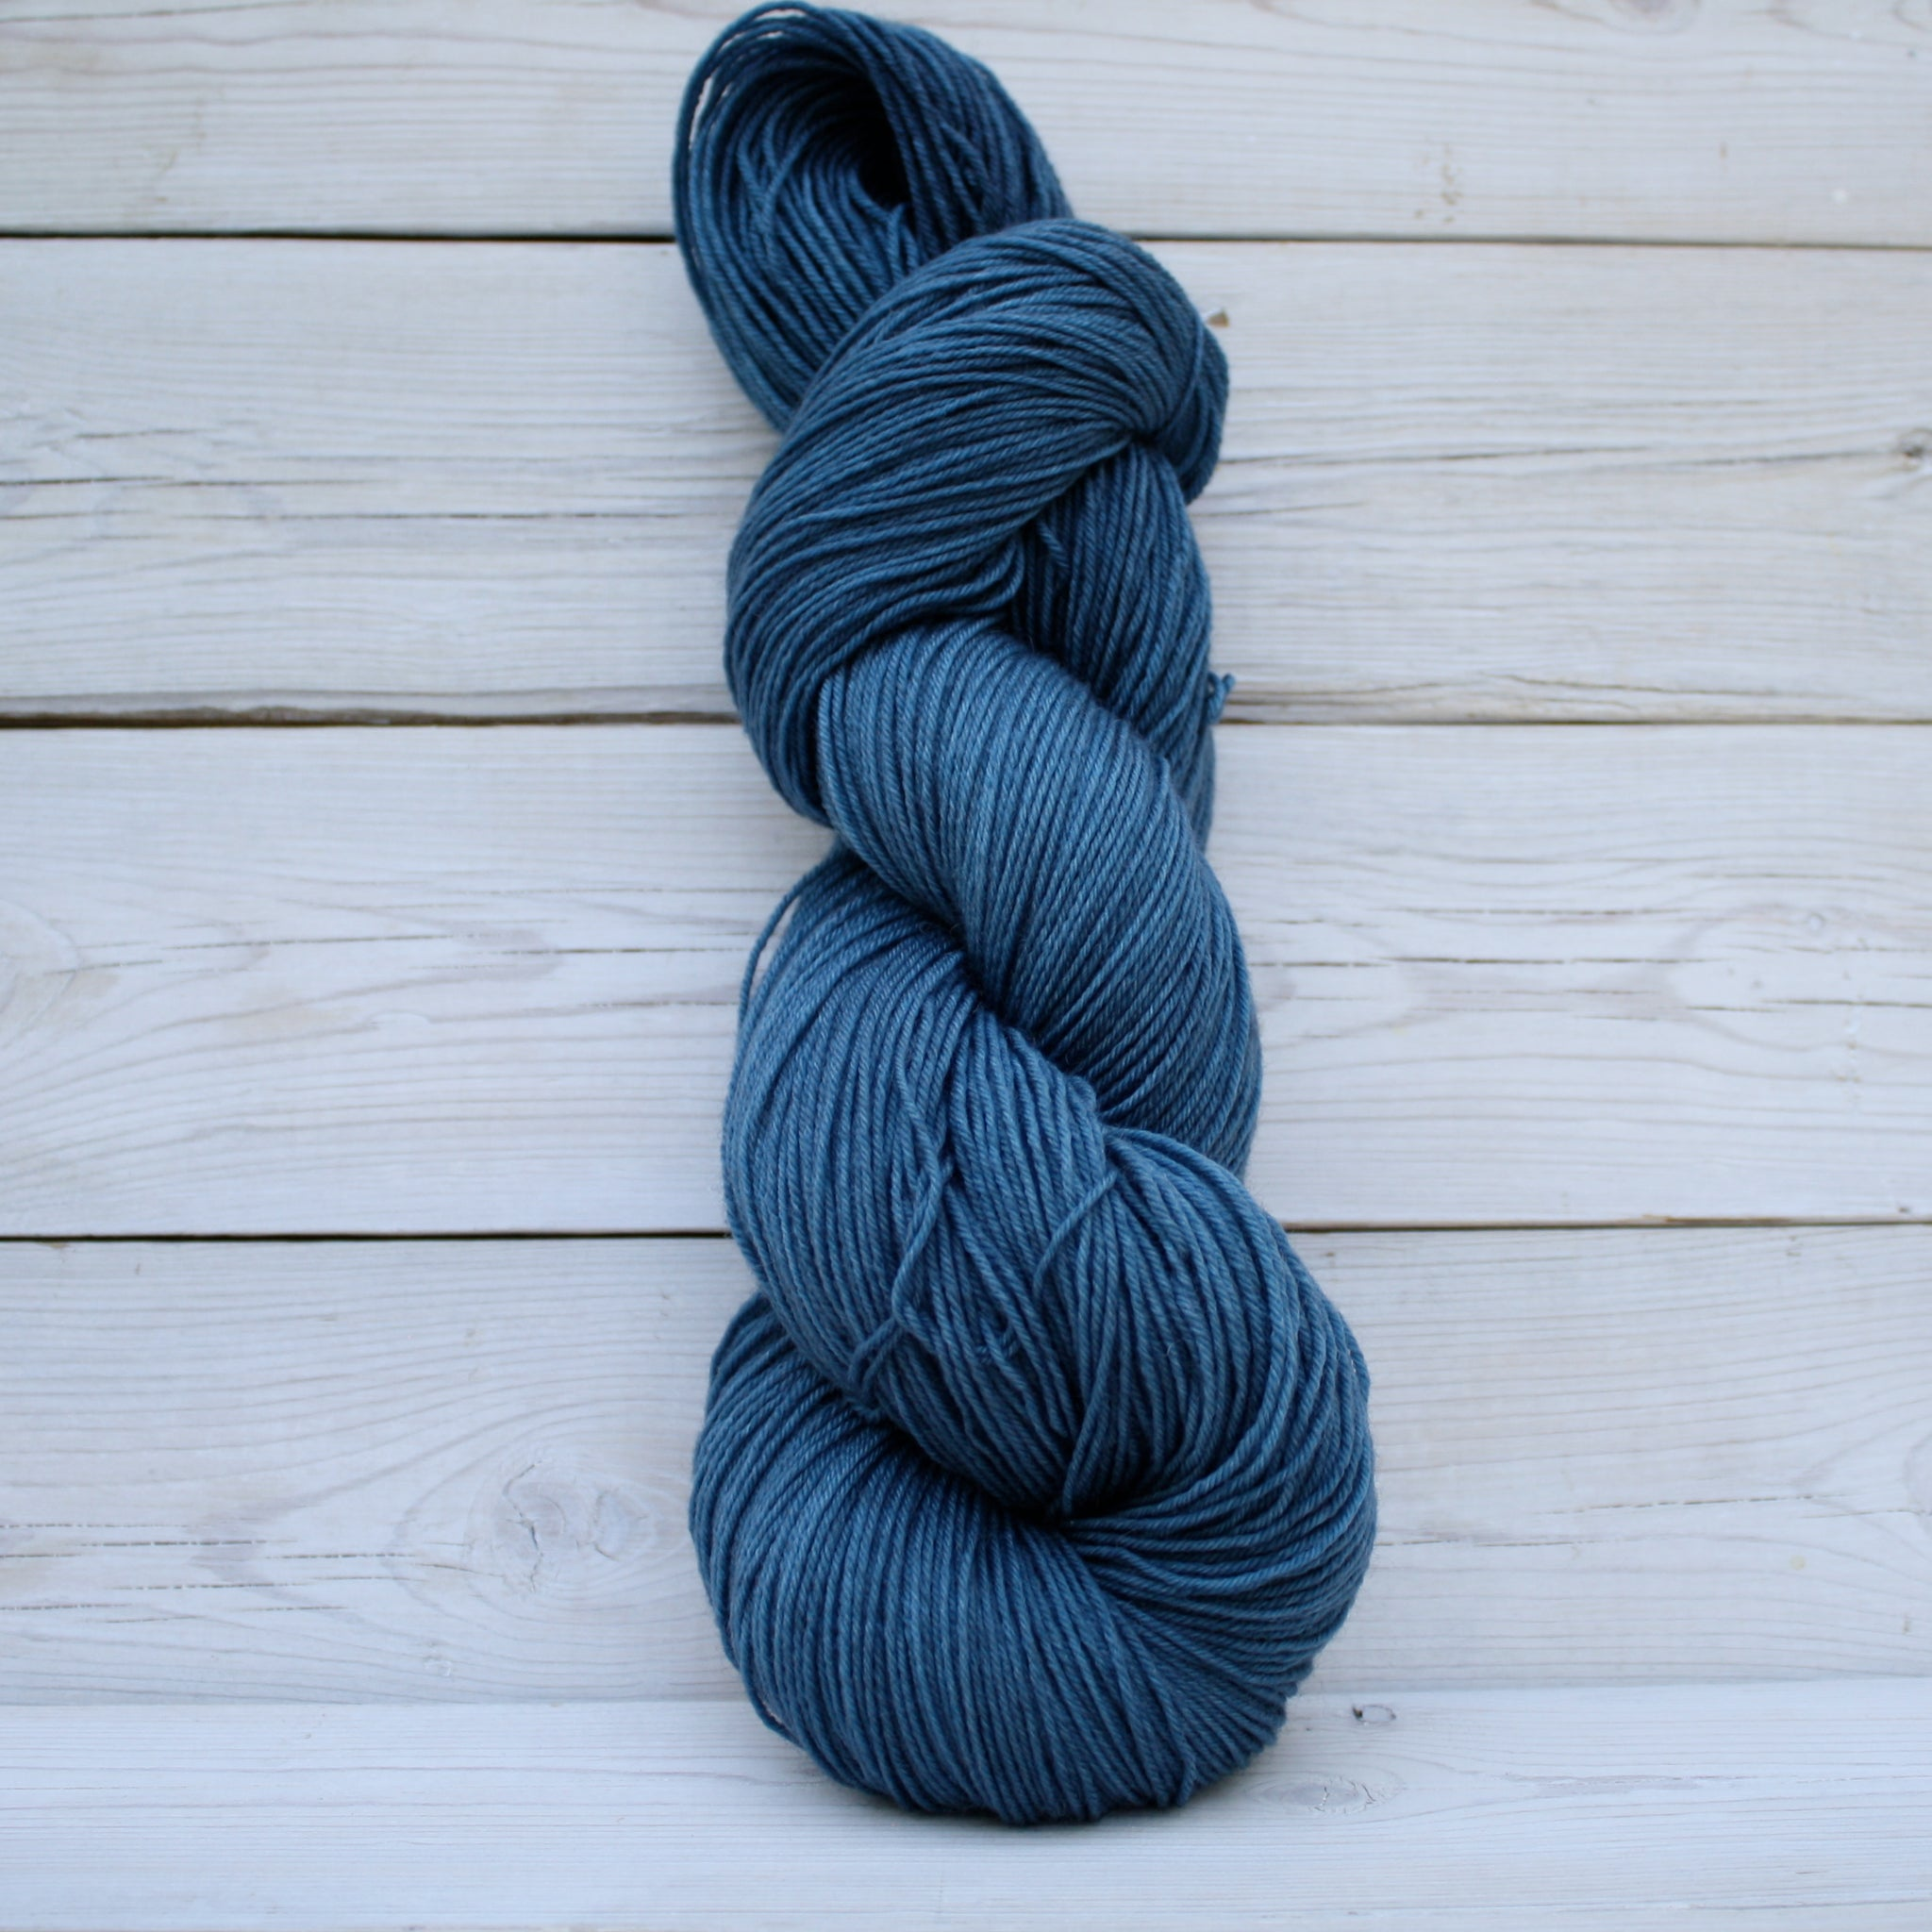 Ariel Yarn | Colorway: Marine